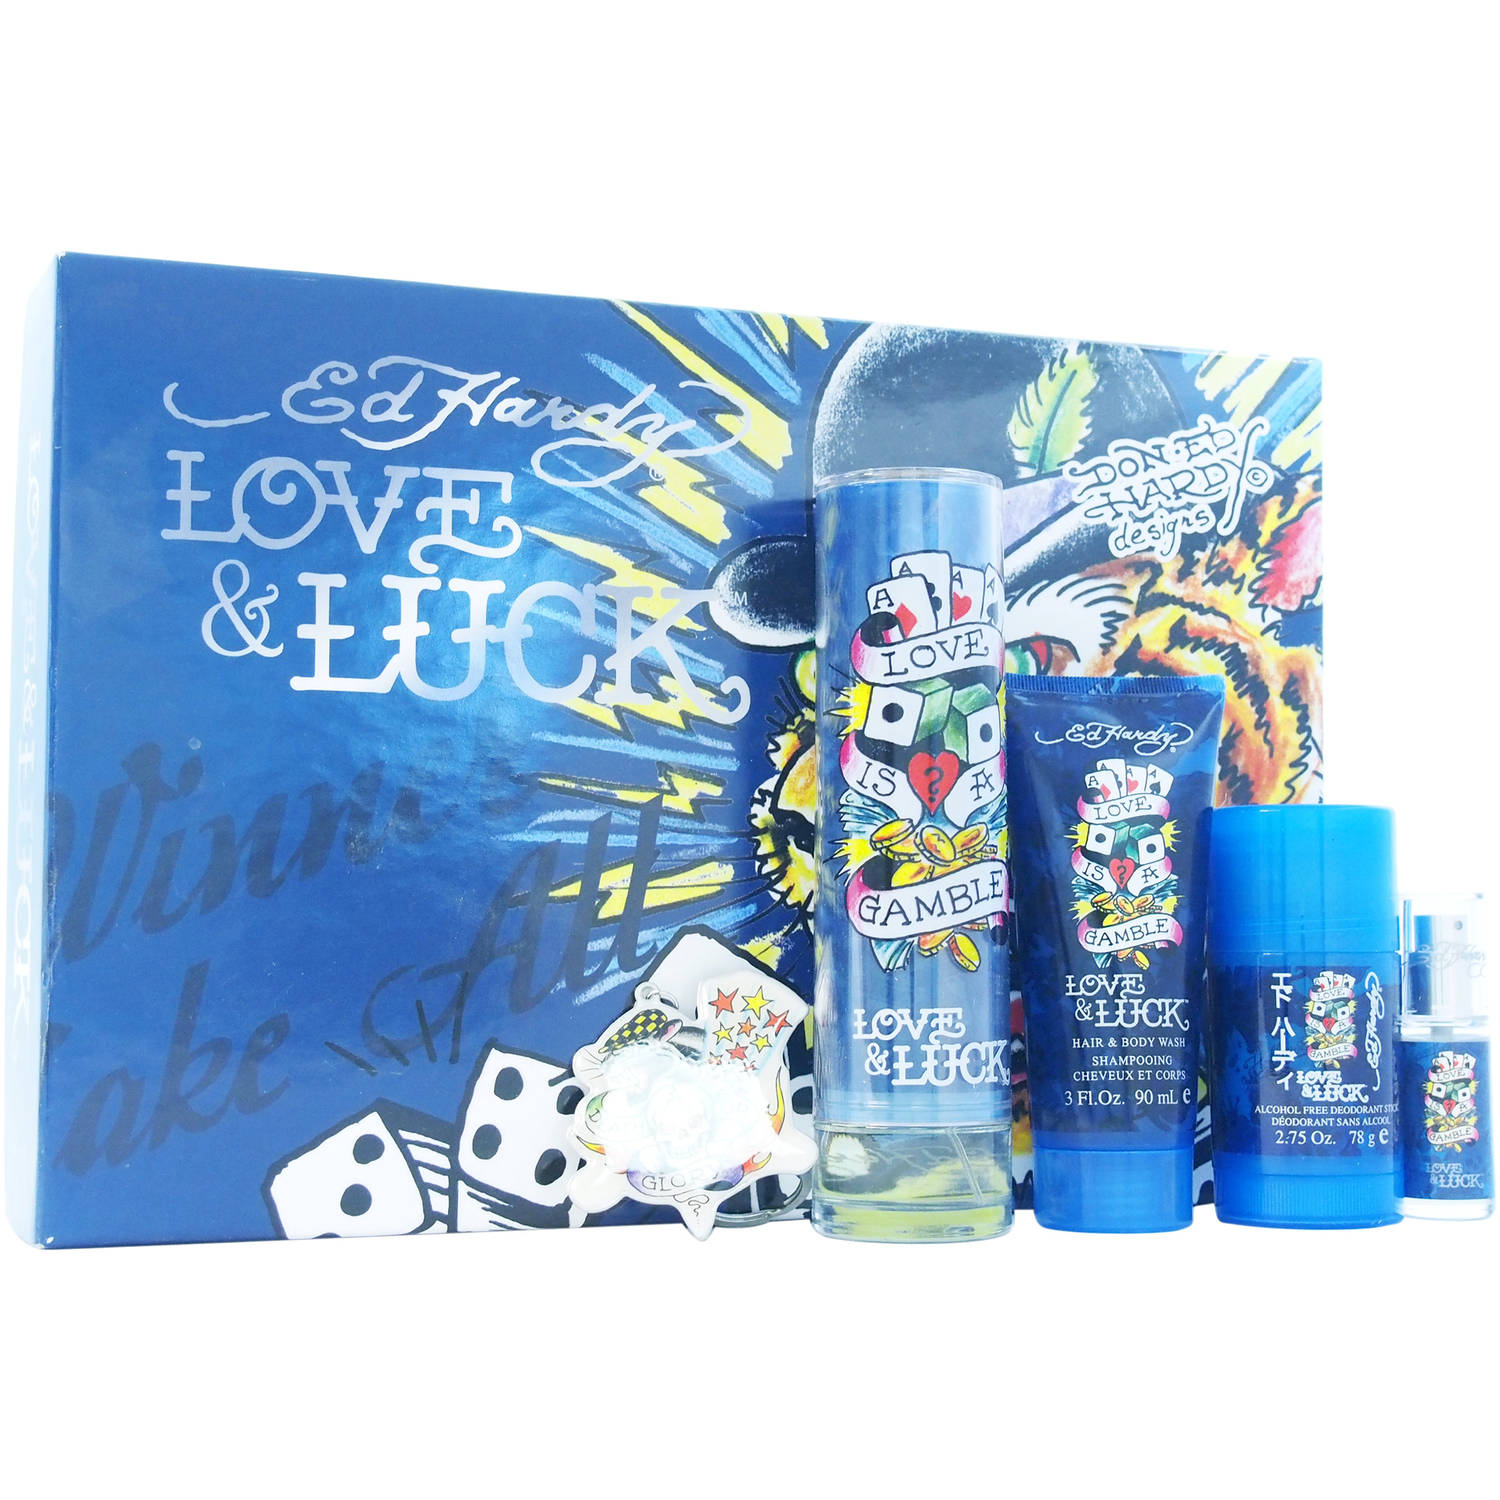 Christian Audigier Love & Luck Gift Set -- 3.4 oz Eau De Toilette Spray   3 oz Hair & Body Wash   2.75 oz Deodorant Stick   .25 oz Mini EDT Spray   Tatoo Design Key Chain For Men